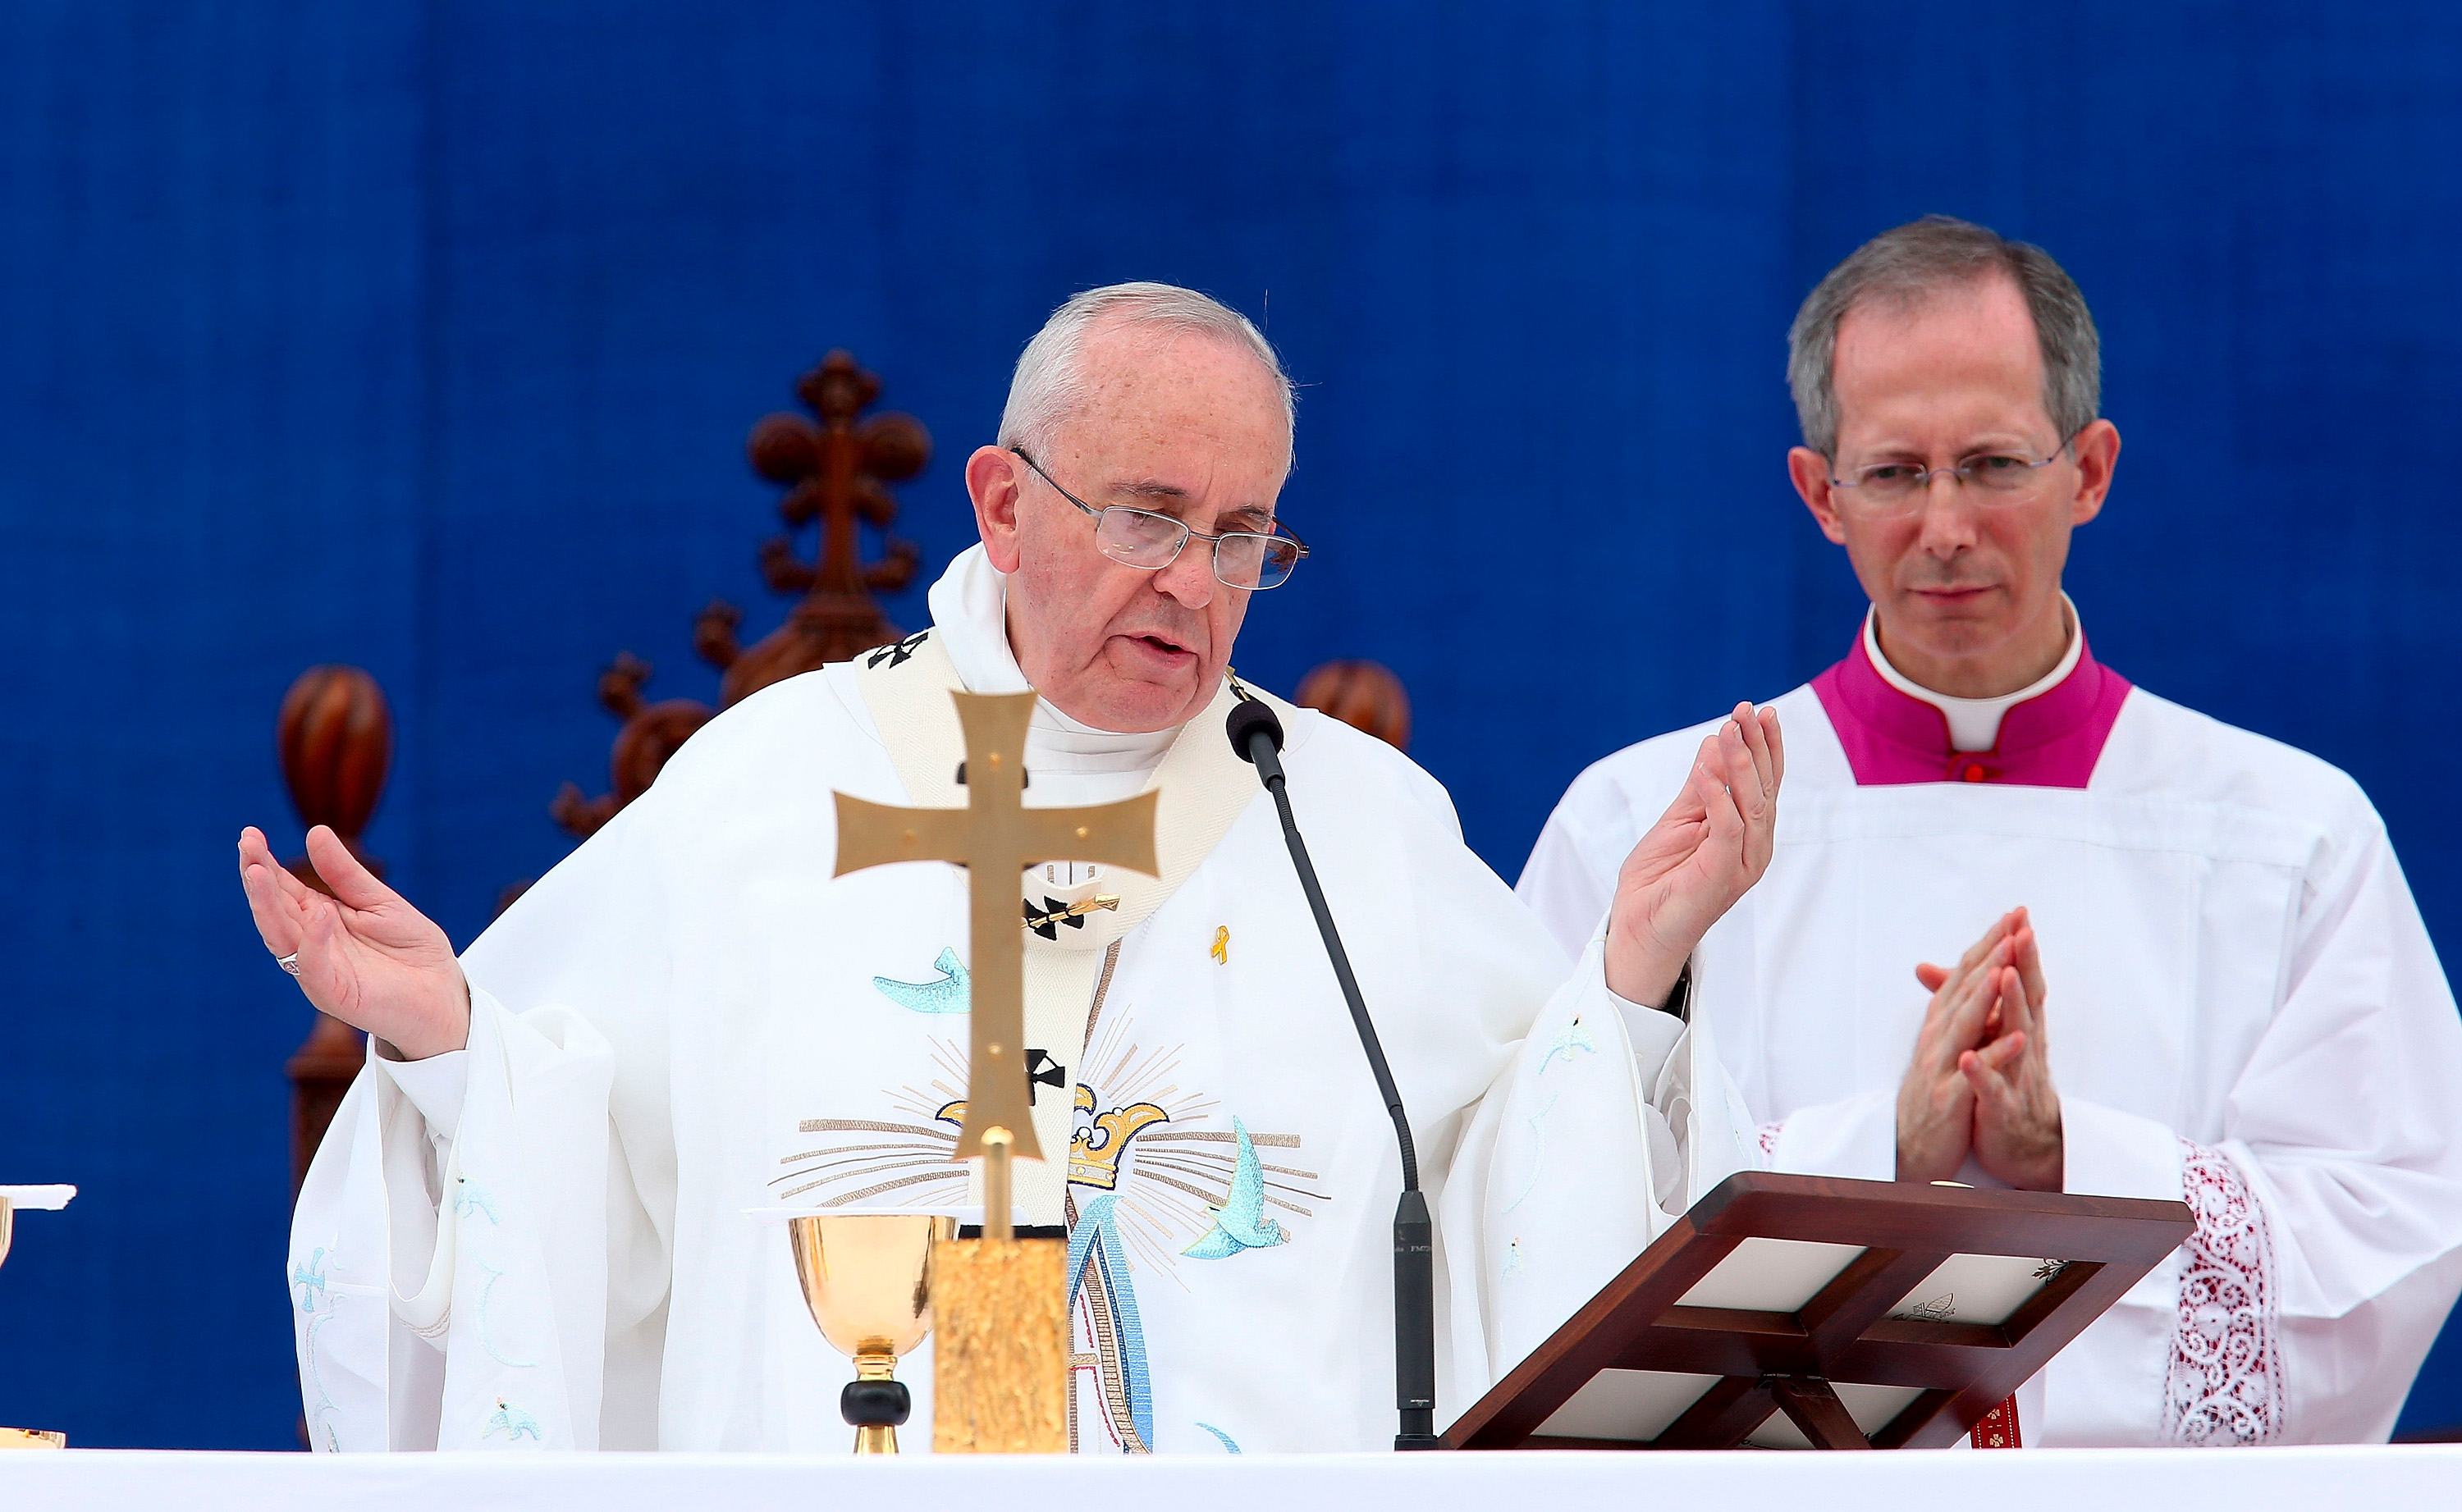 Pope Francis speaks in Daejeon, South Korea, on Friday, August 15. He is visiting South Korea from August 14 to August 18.